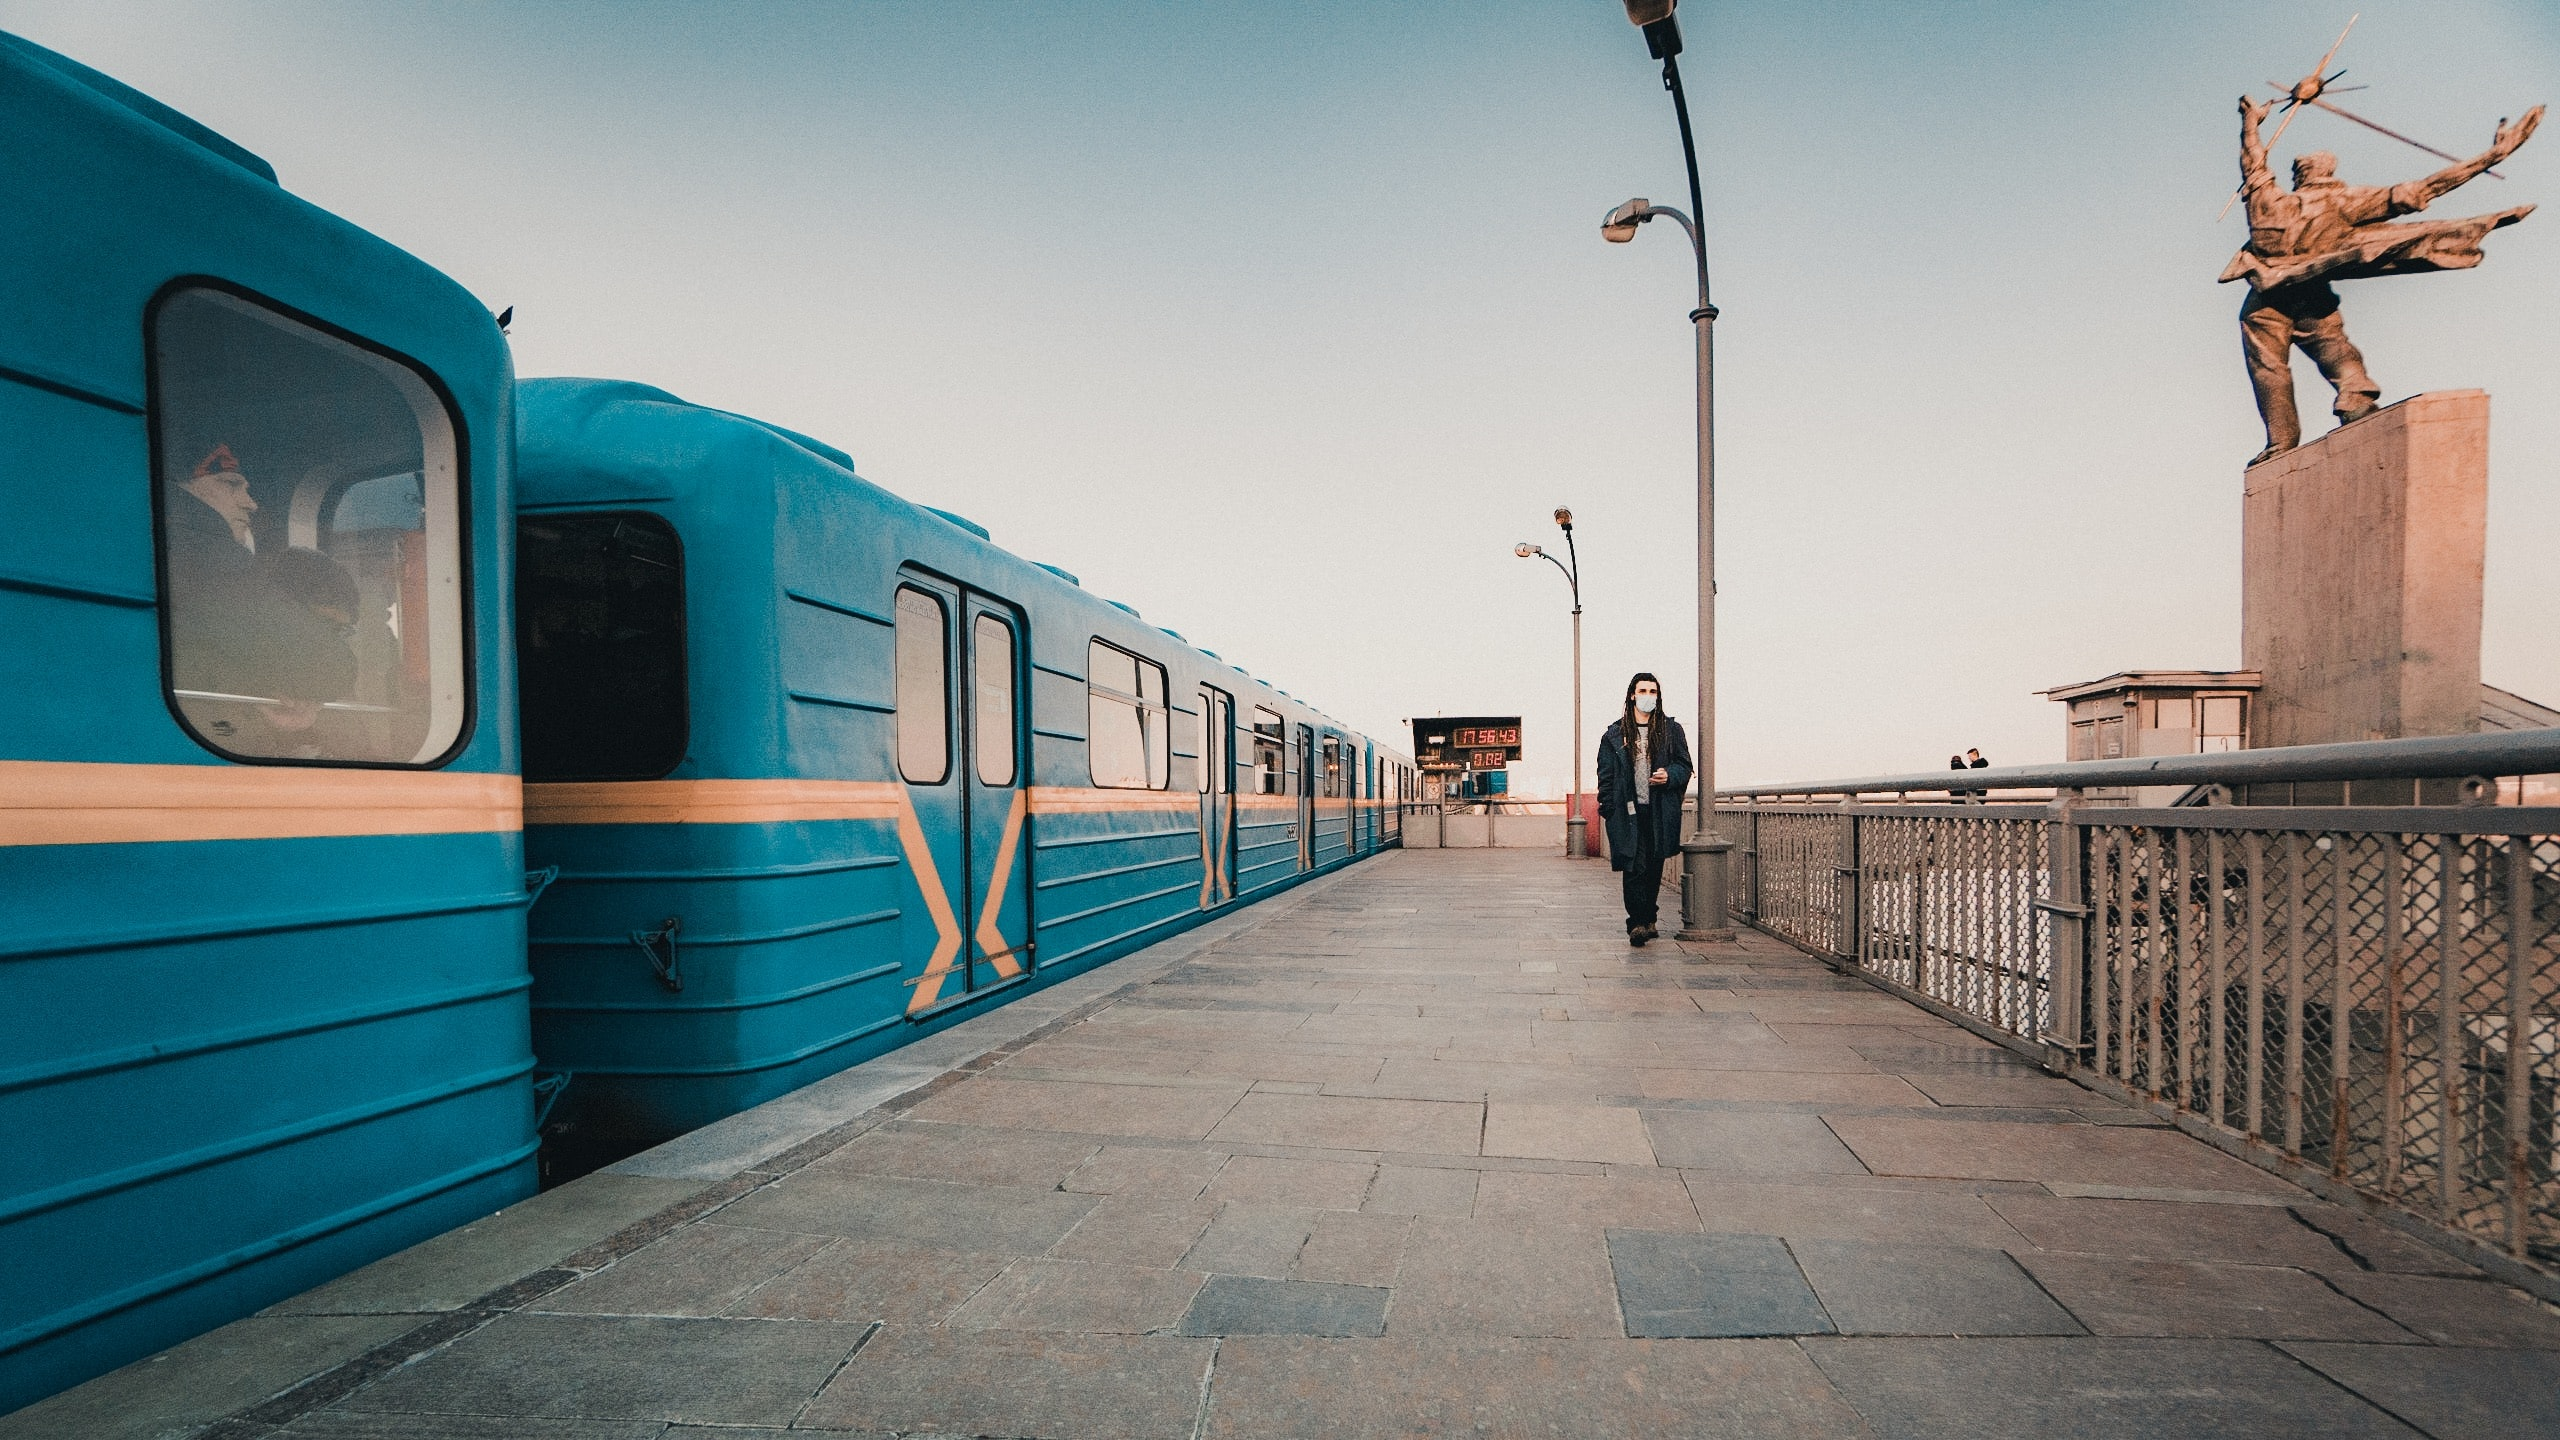 person walking near blue train during daytime